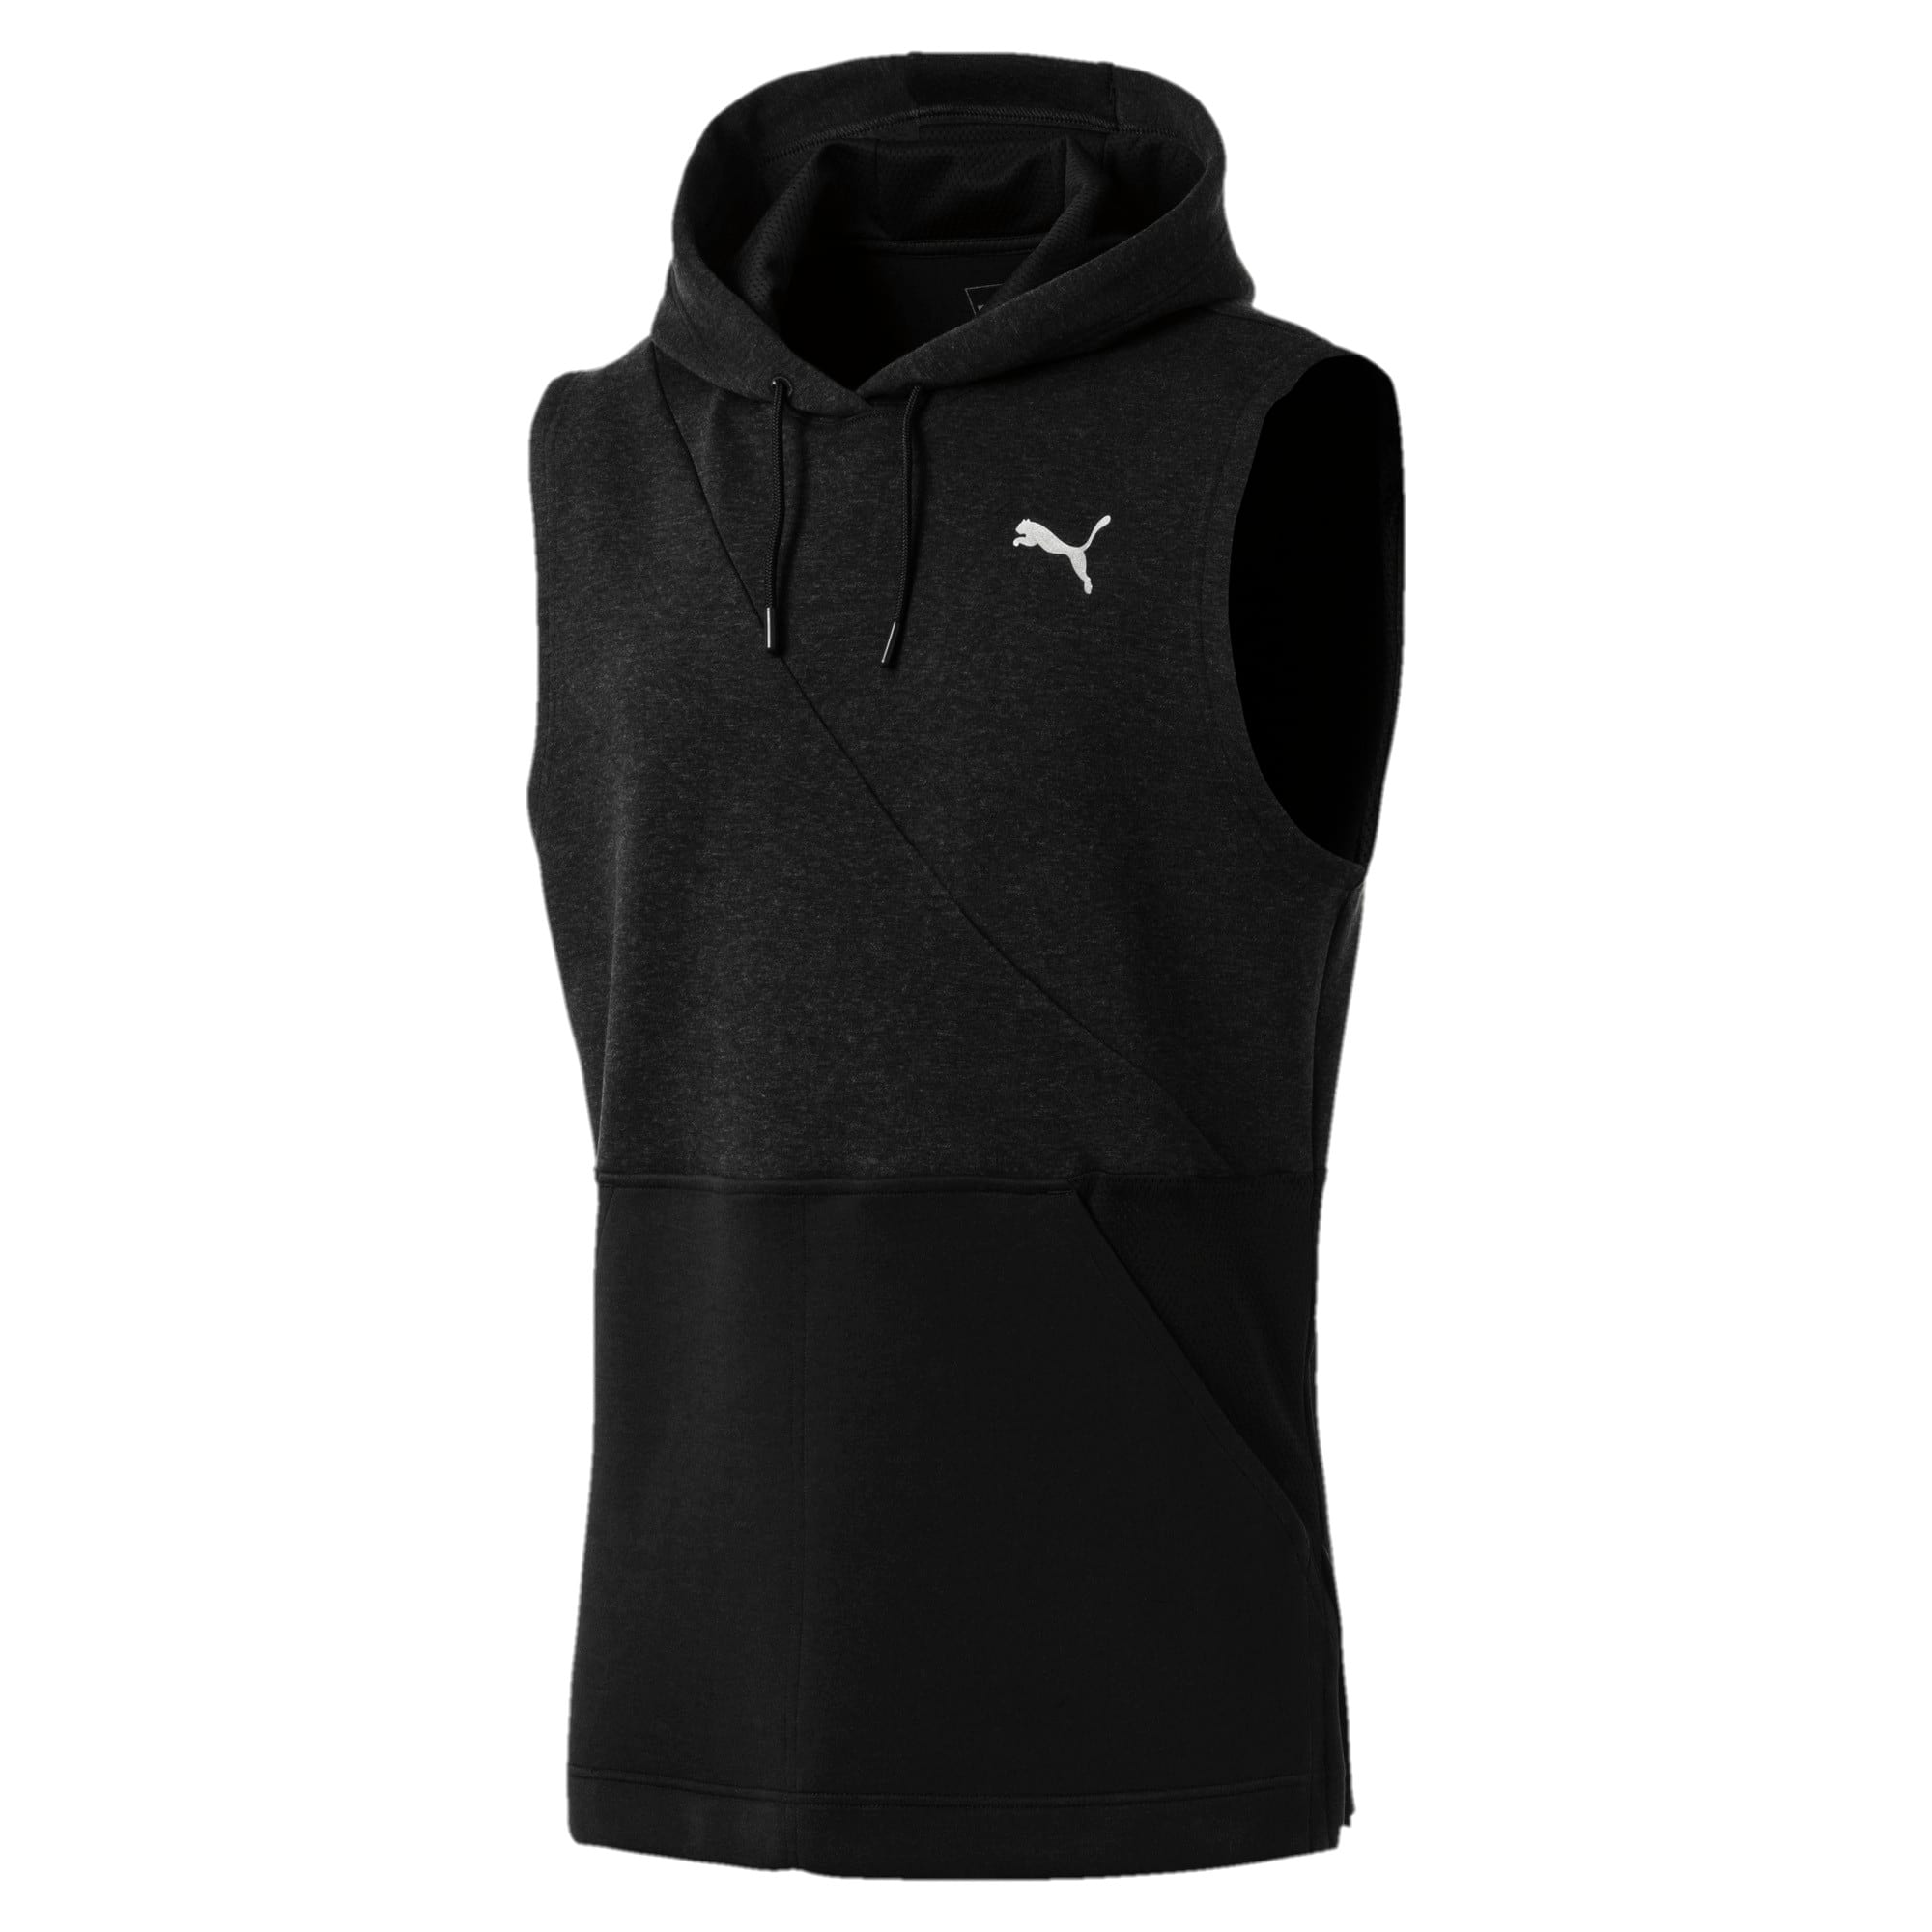 Thumbnail 4 of BND Ärmelloser Herren Trainings-Hoodie, Puma Black Heather, medium